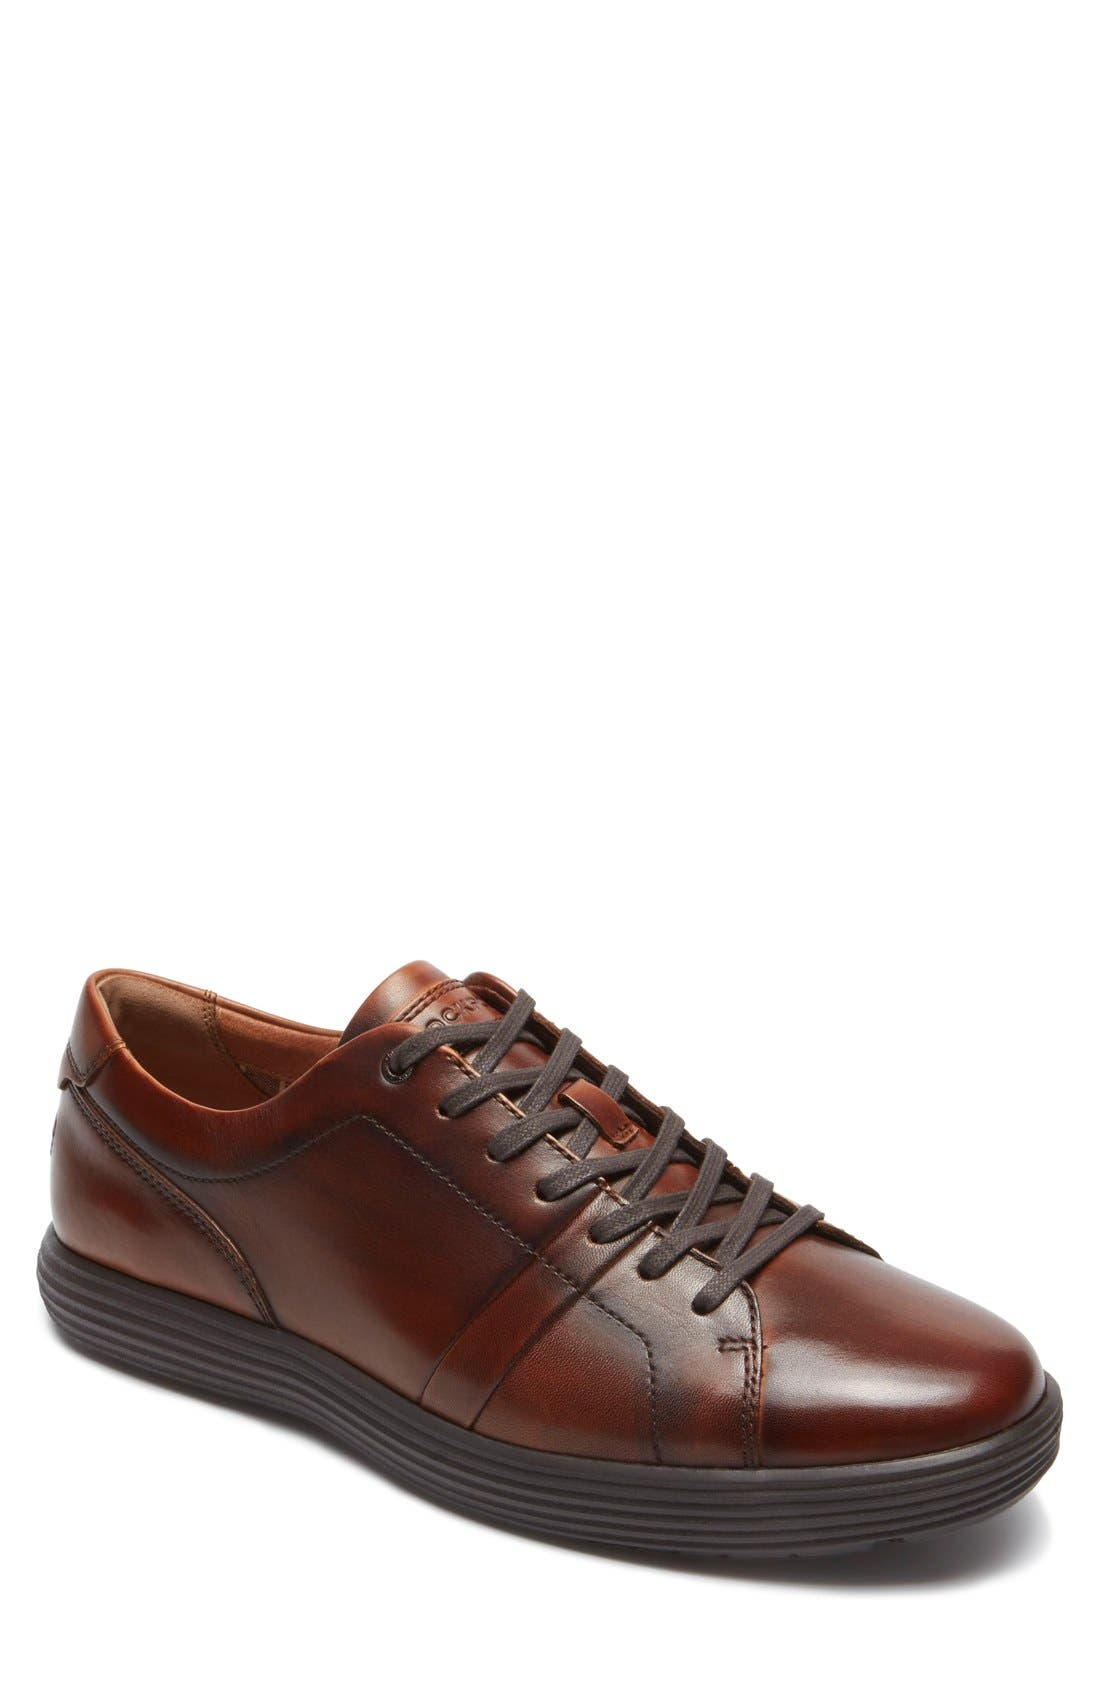 Thurston Sneaker,                             Main thumbnail 6, color,